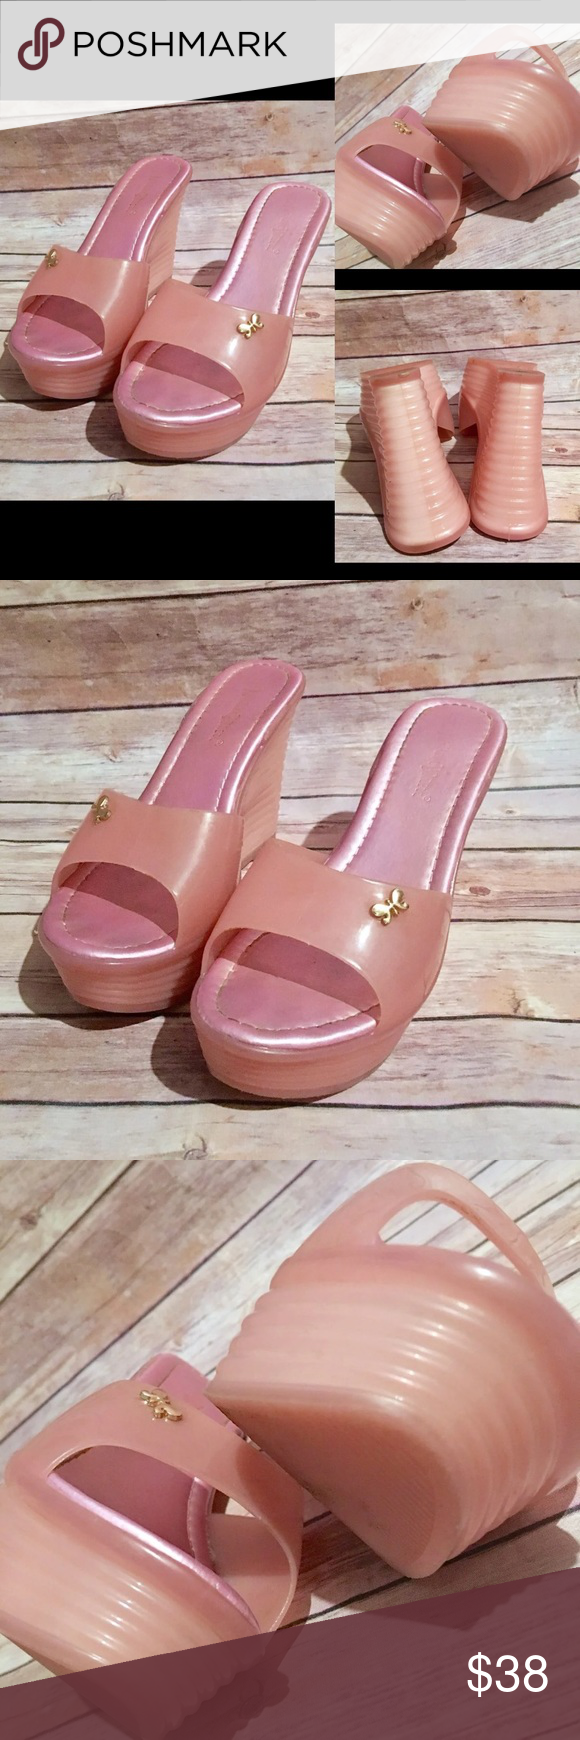 b866f0cf17f5 Baby Pink Jelly Marshmallow Wedges Killer 7.5-8.5 Good condition. Golden  butterfly charmed.